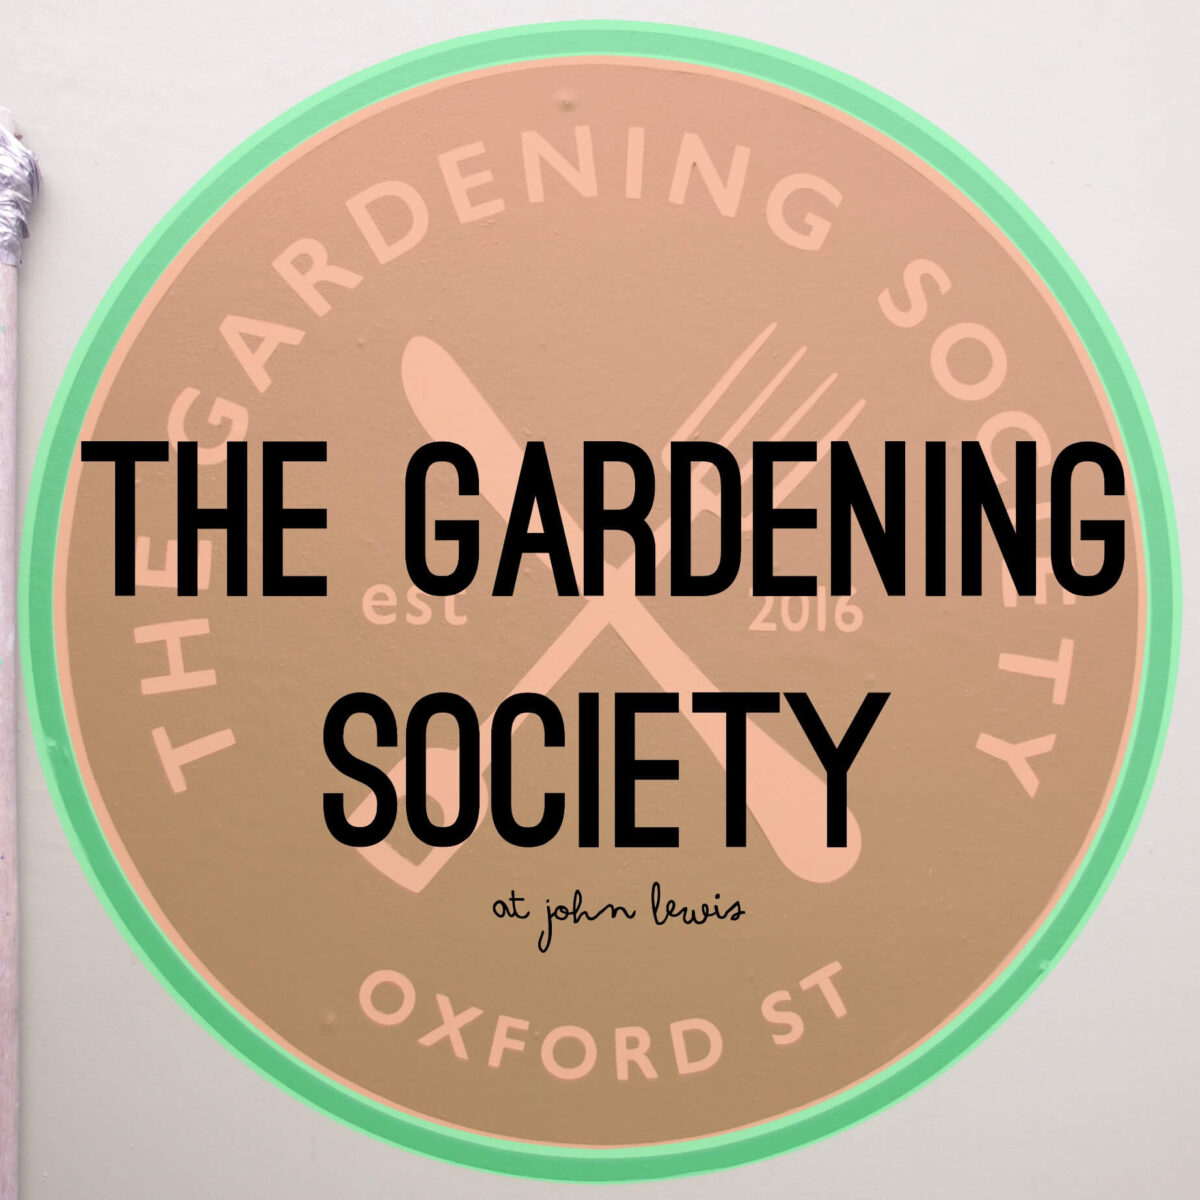 The Gardening Society at John Lewis